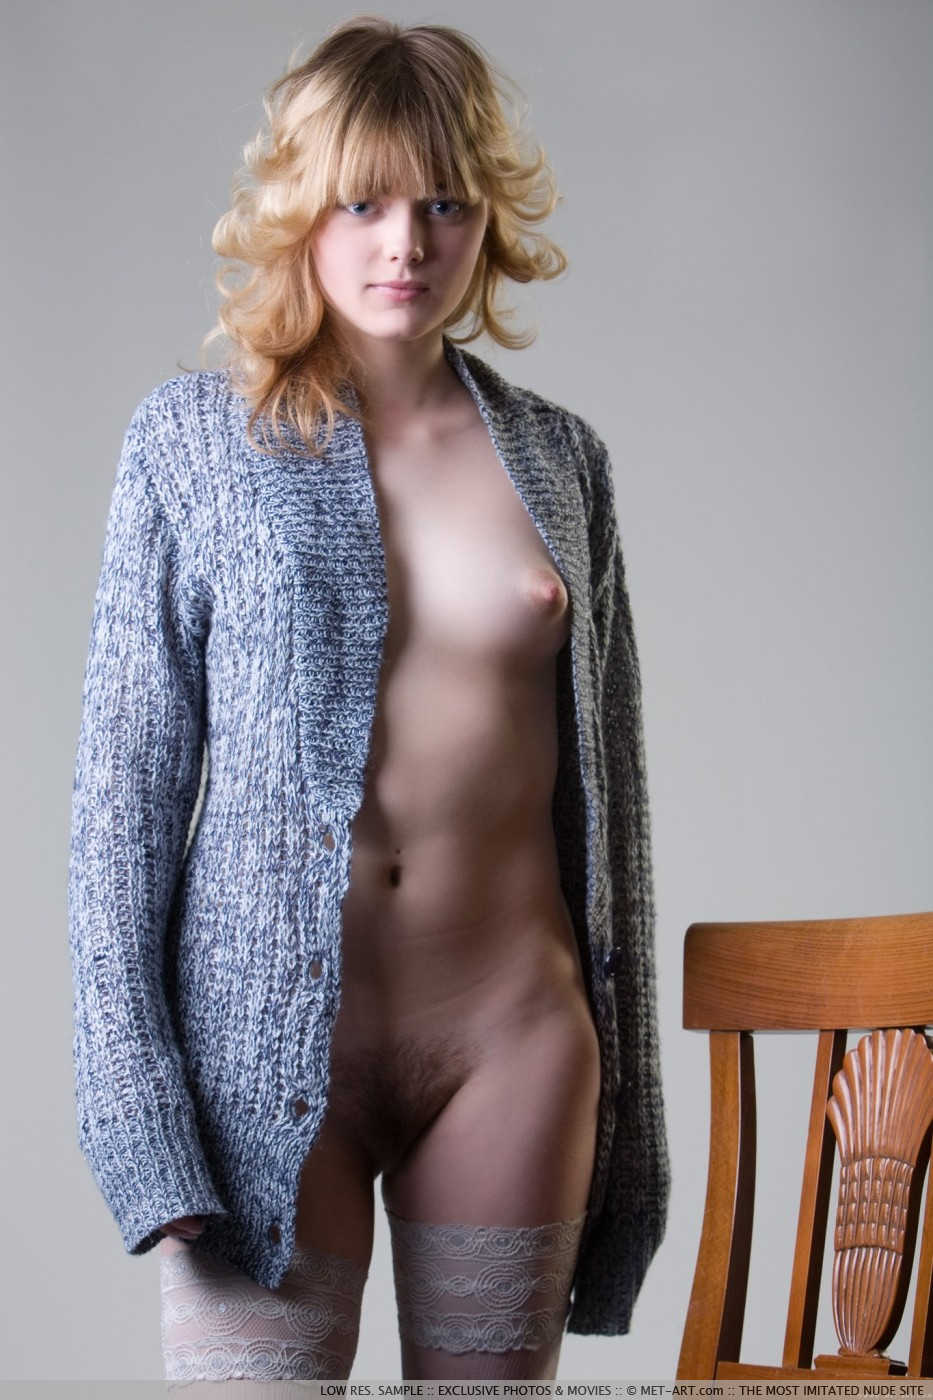 100 Photos of Amy Nude